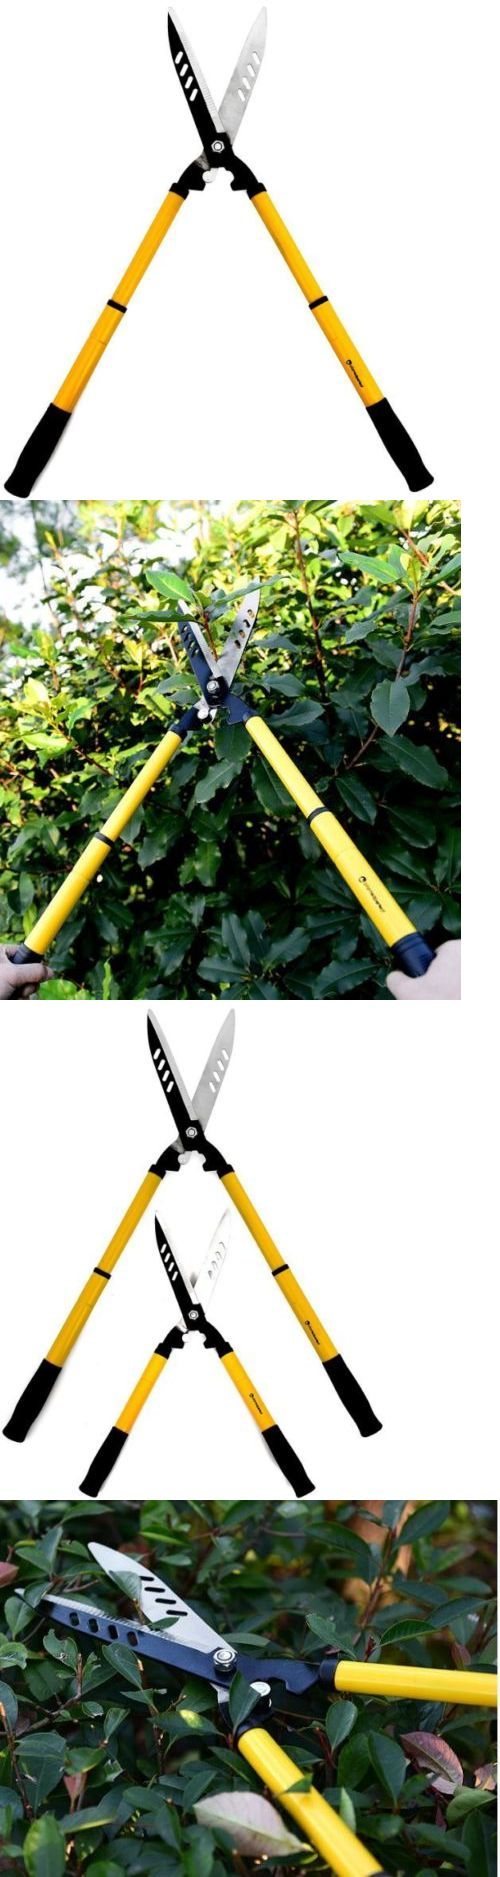 Hedge and Grass Shears 139872: 22 In Extendable Garden Clippers Hedge Shears Bush Tree Pruning Trimming Tool -> BUY IT NOW ONLY: $31.61 on eBay!